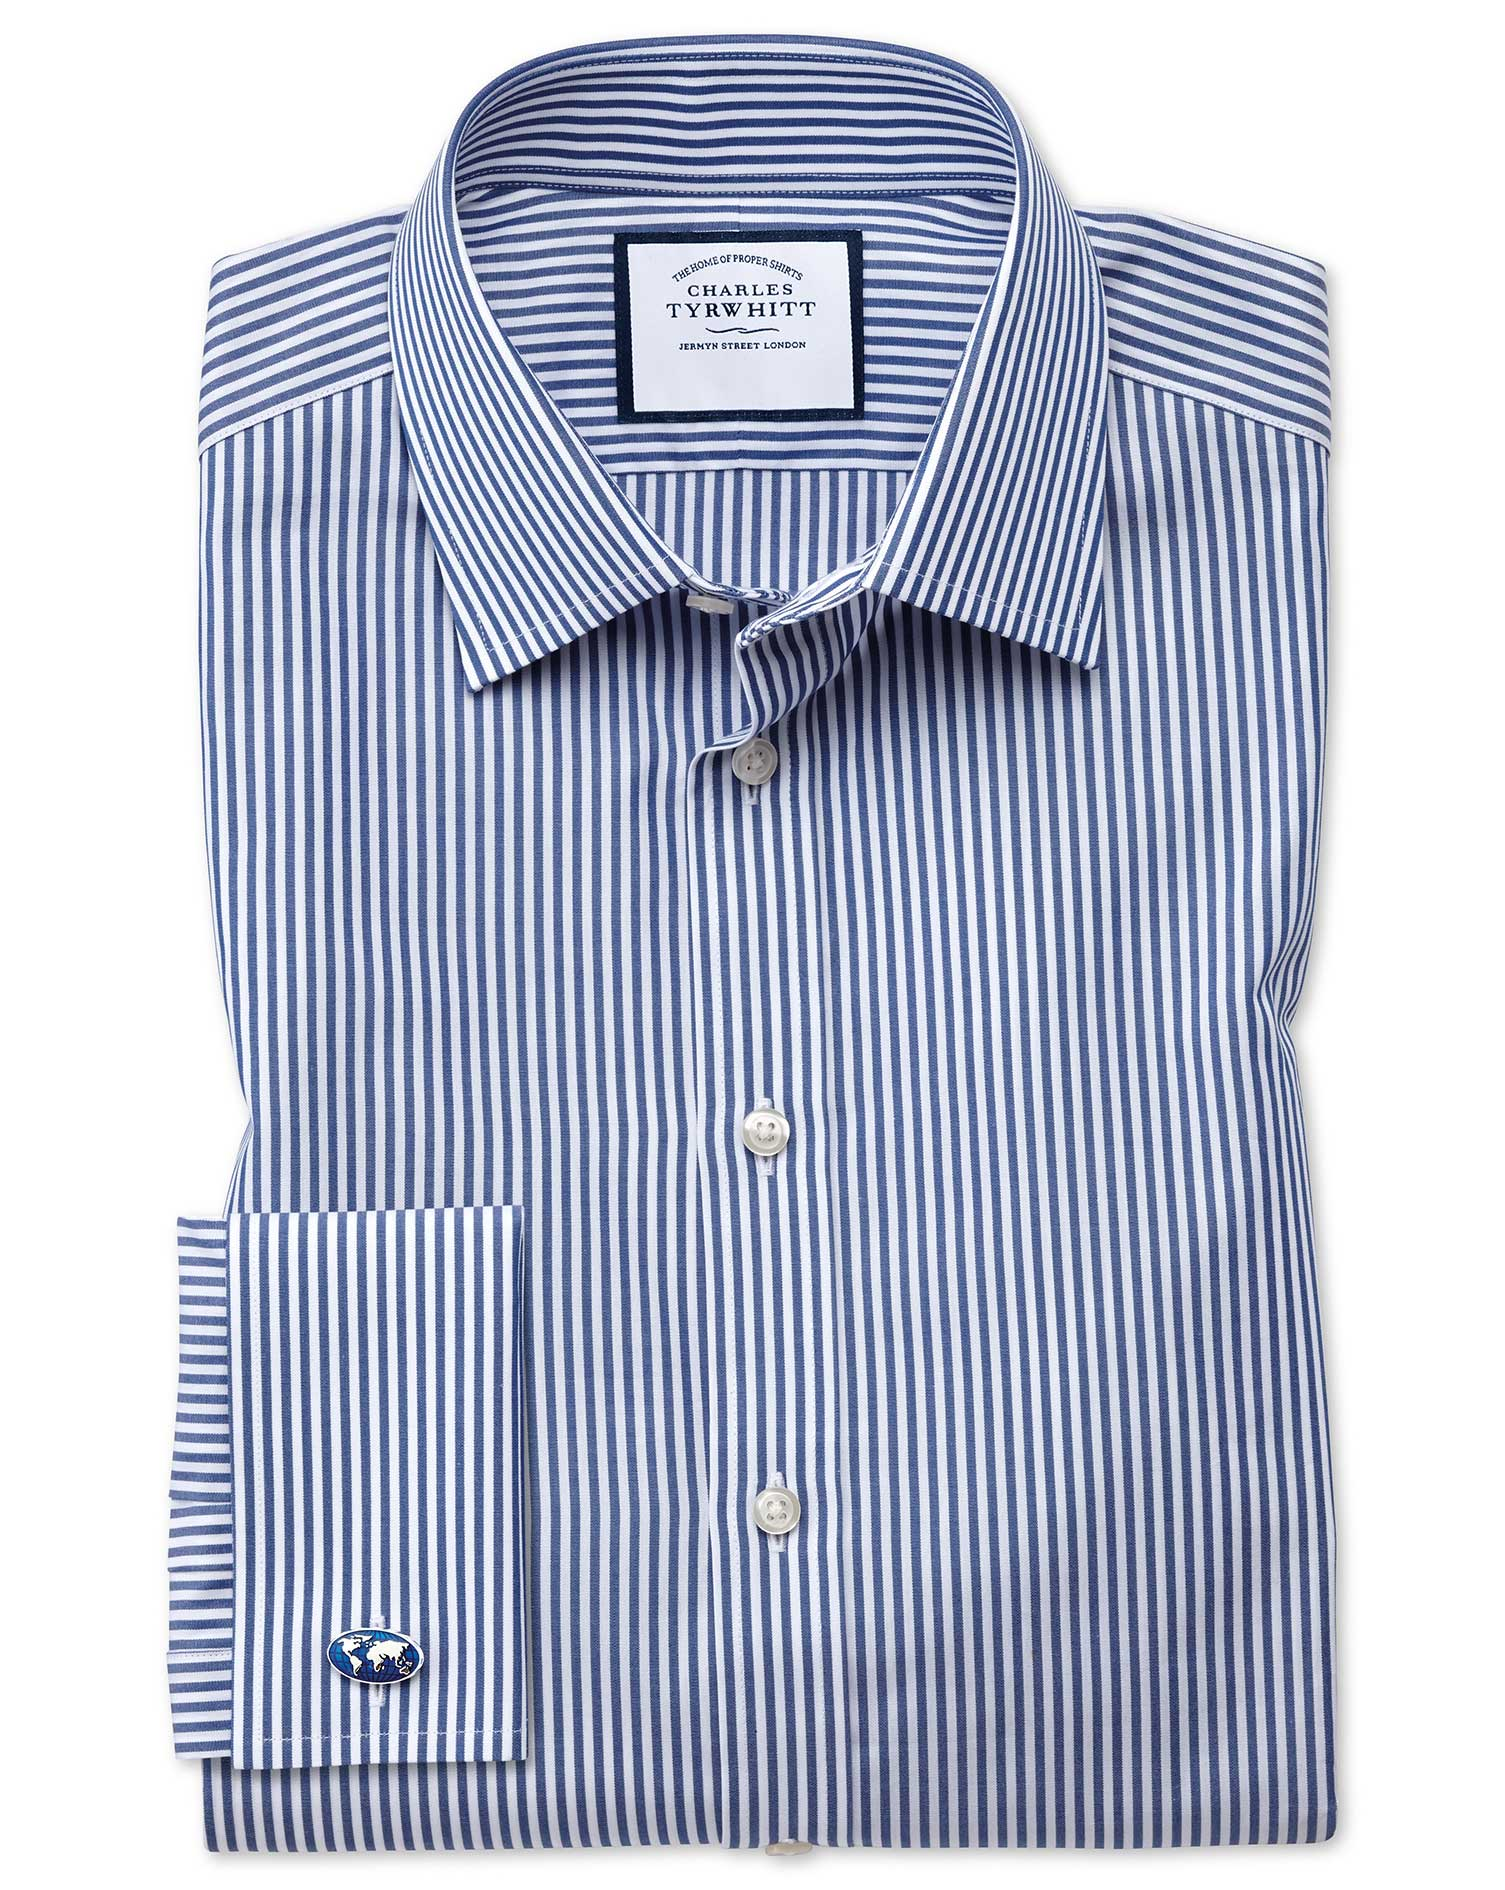 Extra Slim Fit Bengal Stripe Navy Blue Cotton Formal Shirt Single Cuff Size 16/32 by Charles Tyrwhit